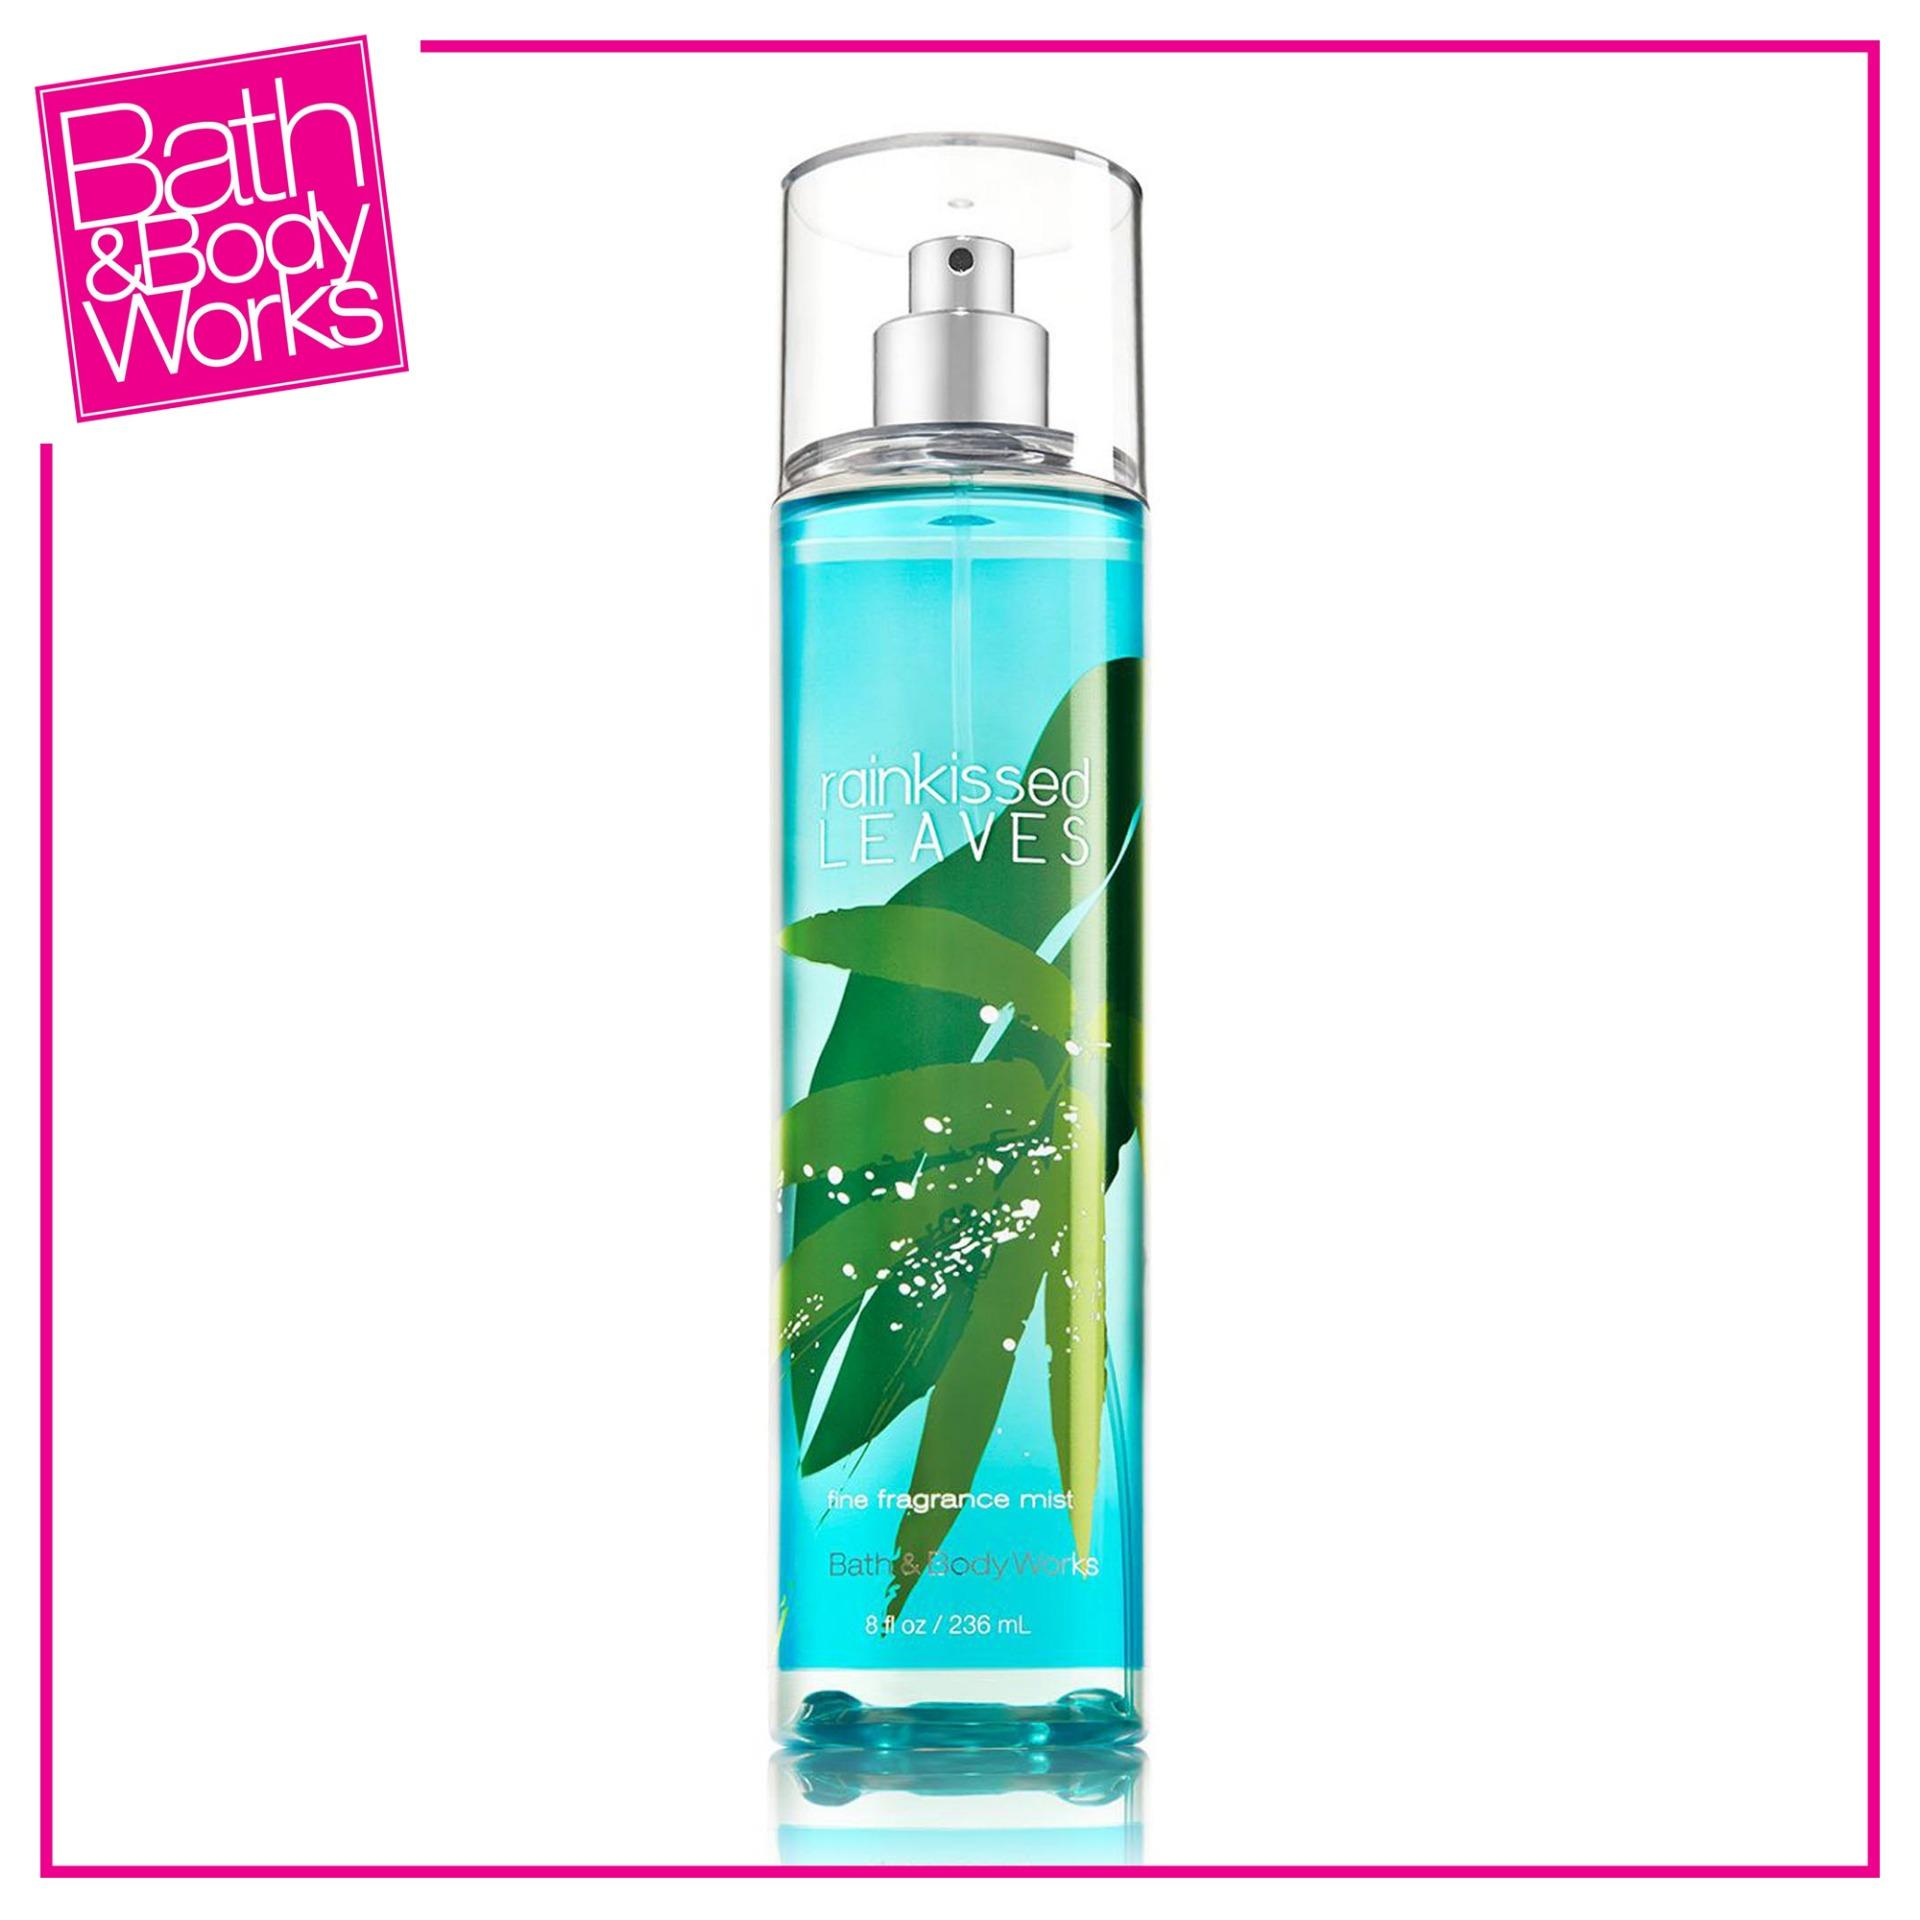 Bath and Body Works Rainkissed Leaves Fine Fragrance Mist 236mL